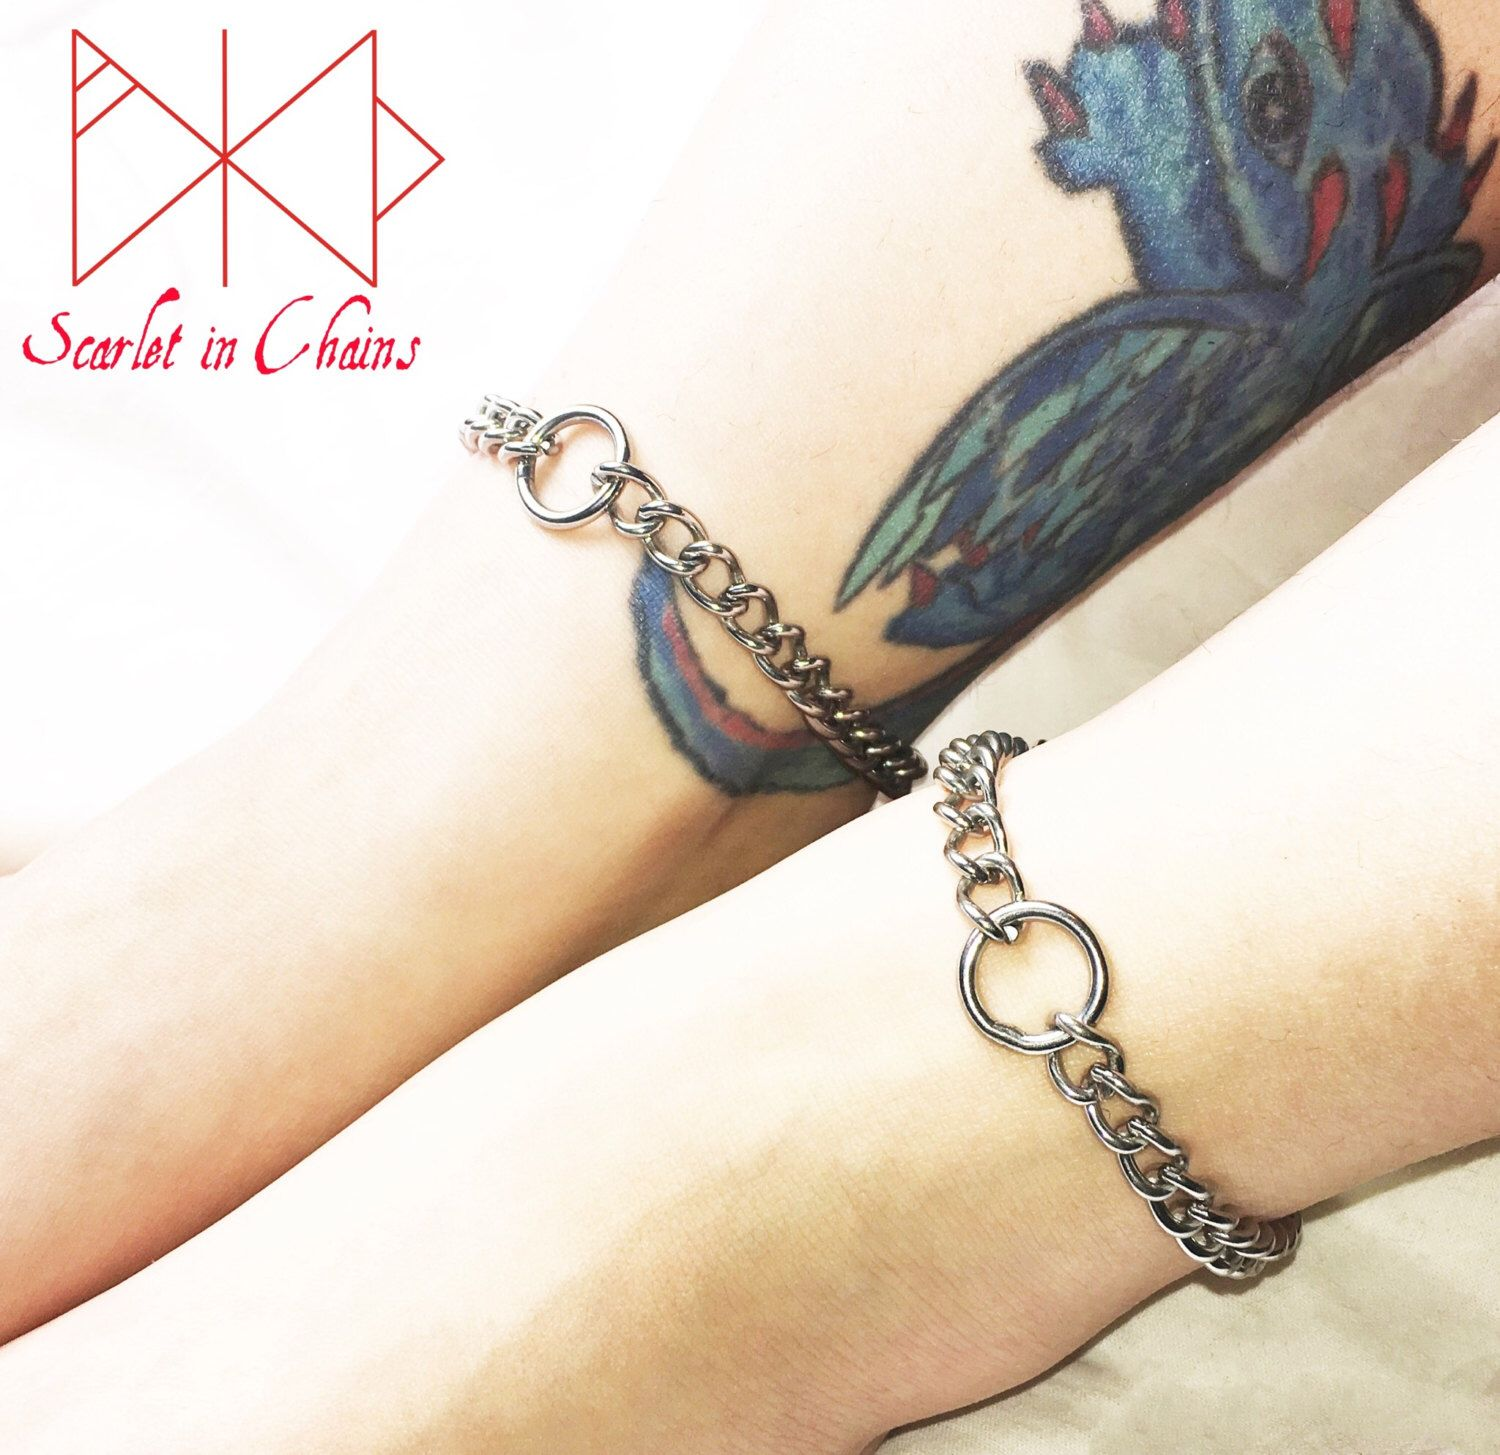 handmade to padlock of buying for jewllery bdsm locking mini shop stainless vintage anklets the selling your through goods and anklet place creativity steel pair express pin etsy on luna